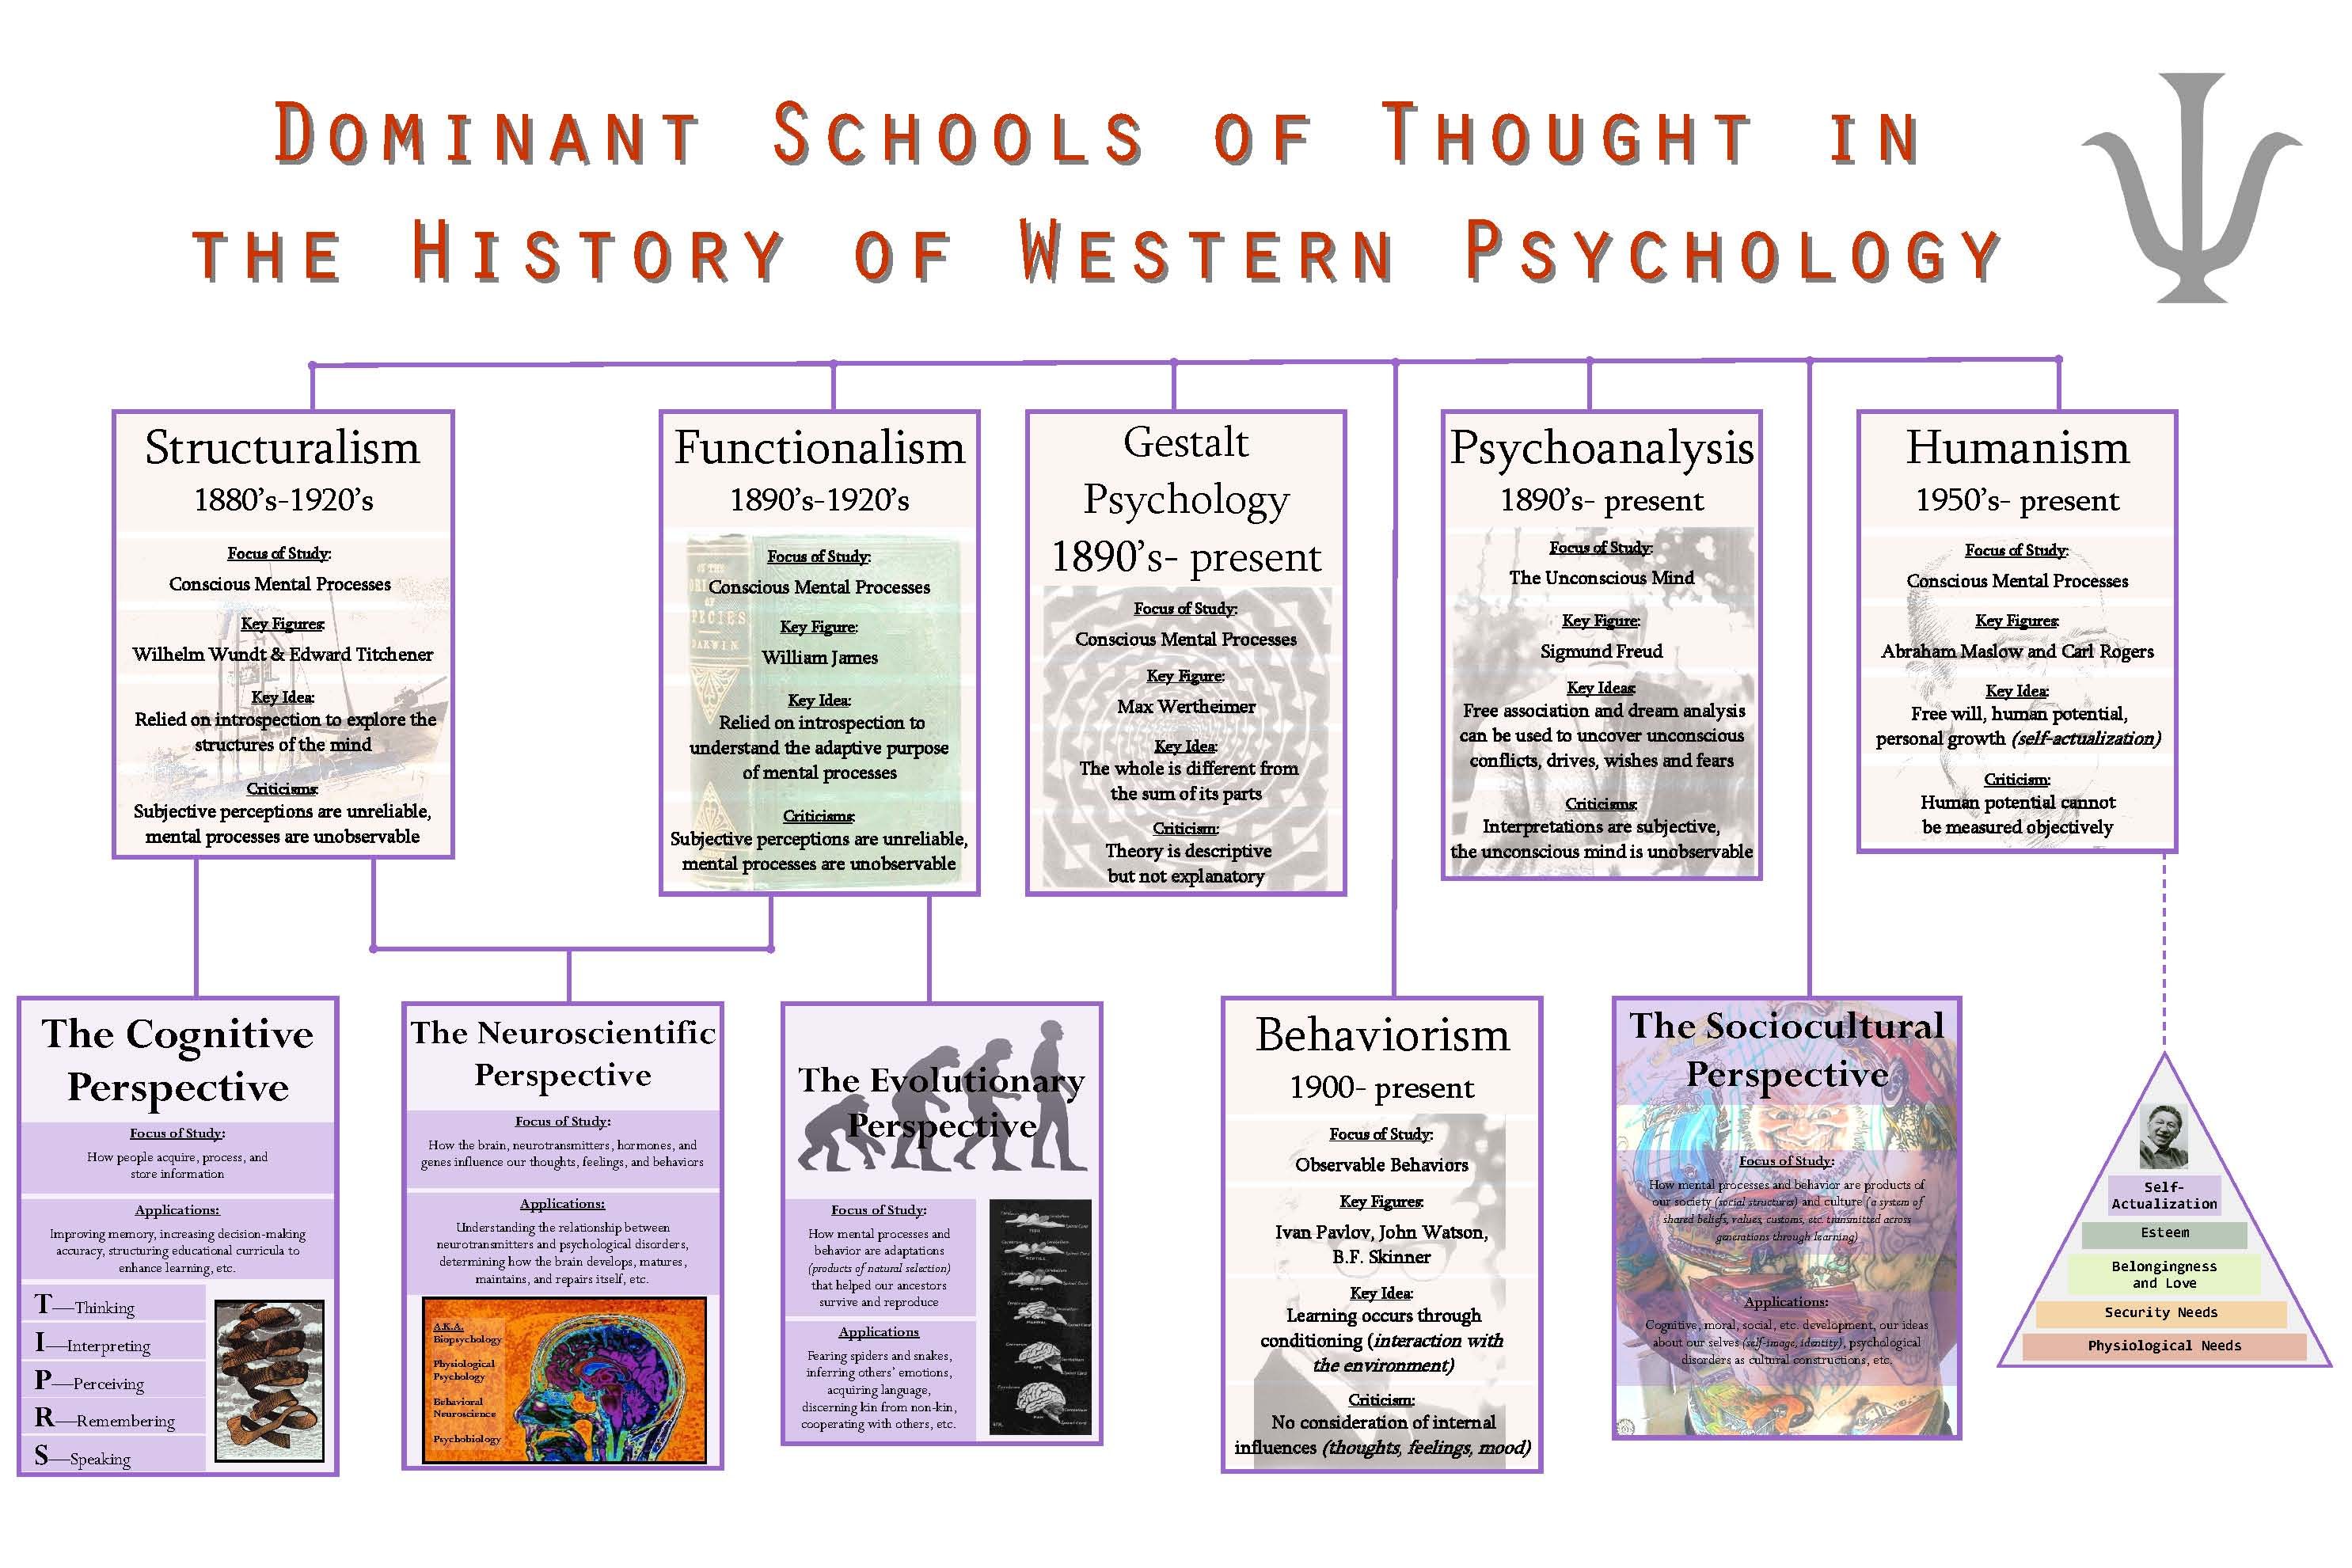 Psychology Schools Of Thought Research Paper For Psychology Majors How To Write A Research Paper On Psychology Schools Of Thought